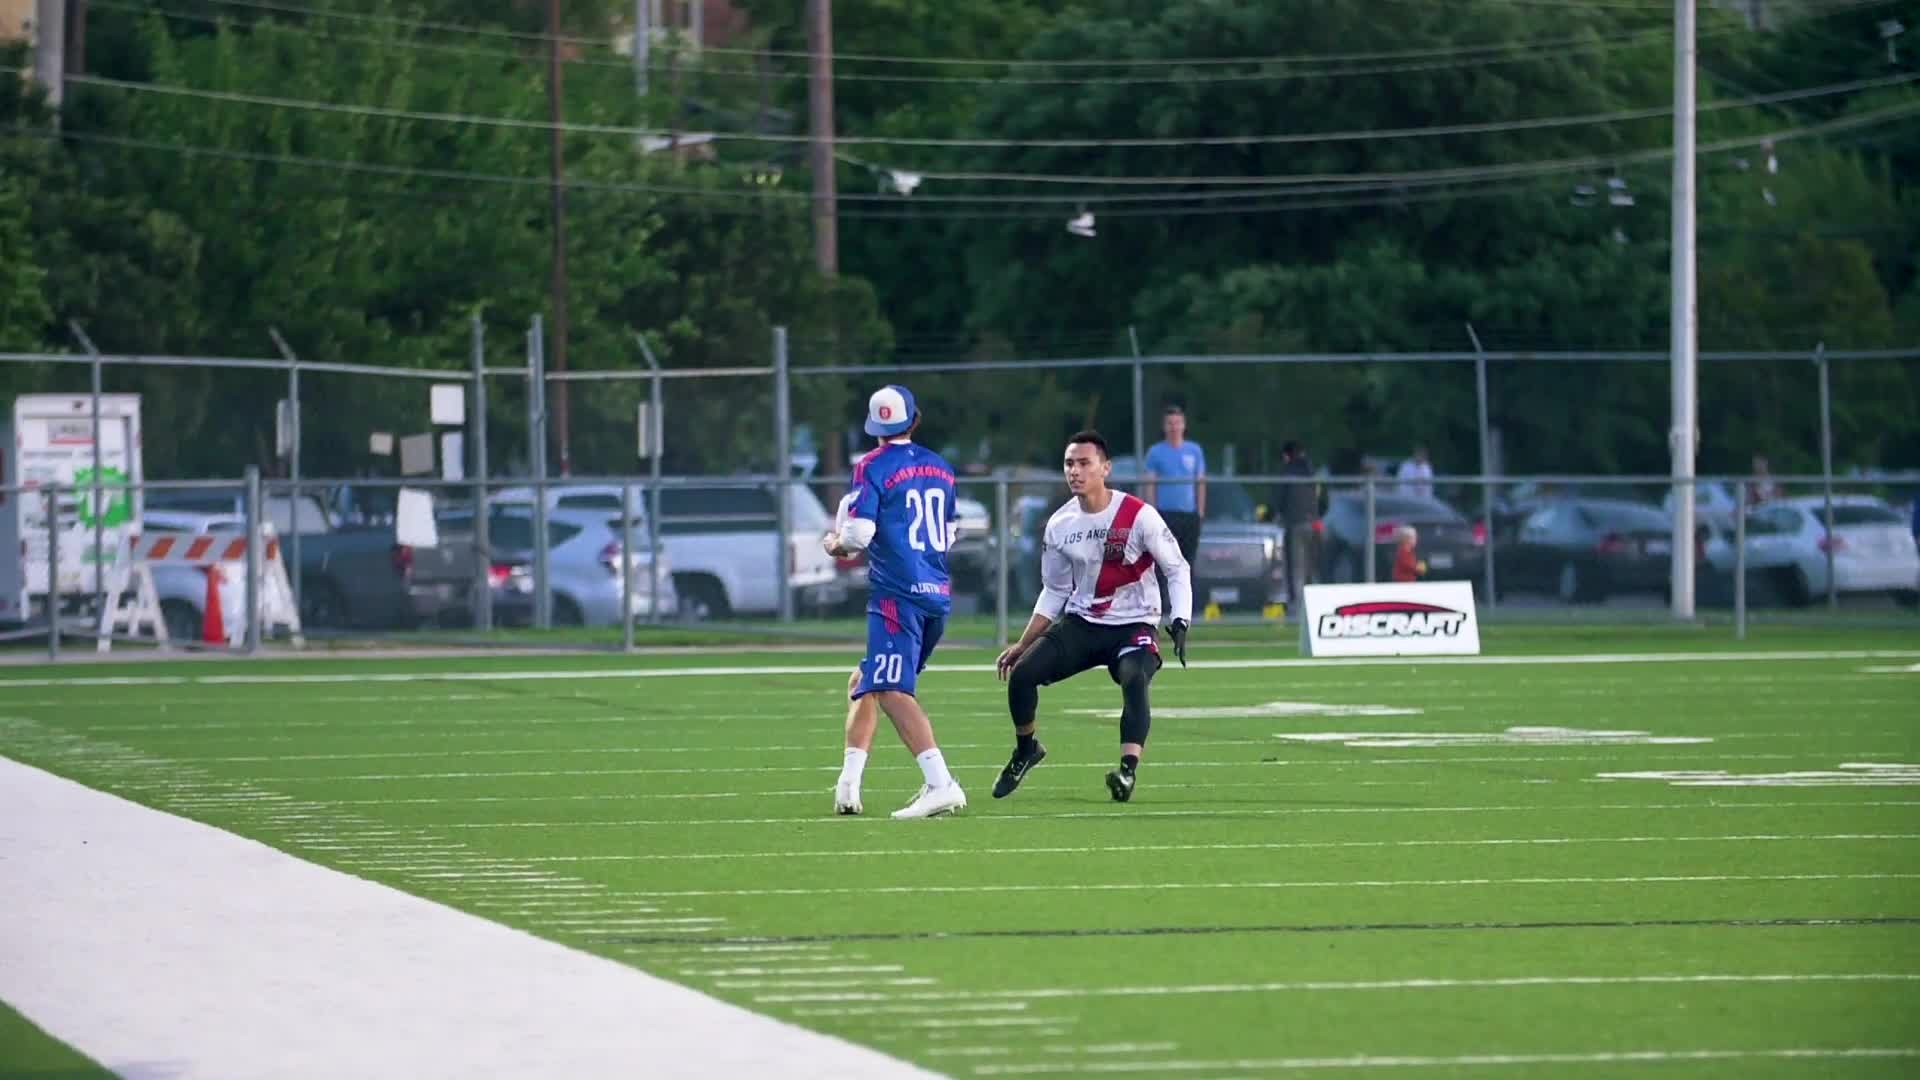 american ultimate disc league, audl, ultimate, ultimate frisbee, Aaron Weaver Layout Block GIFs